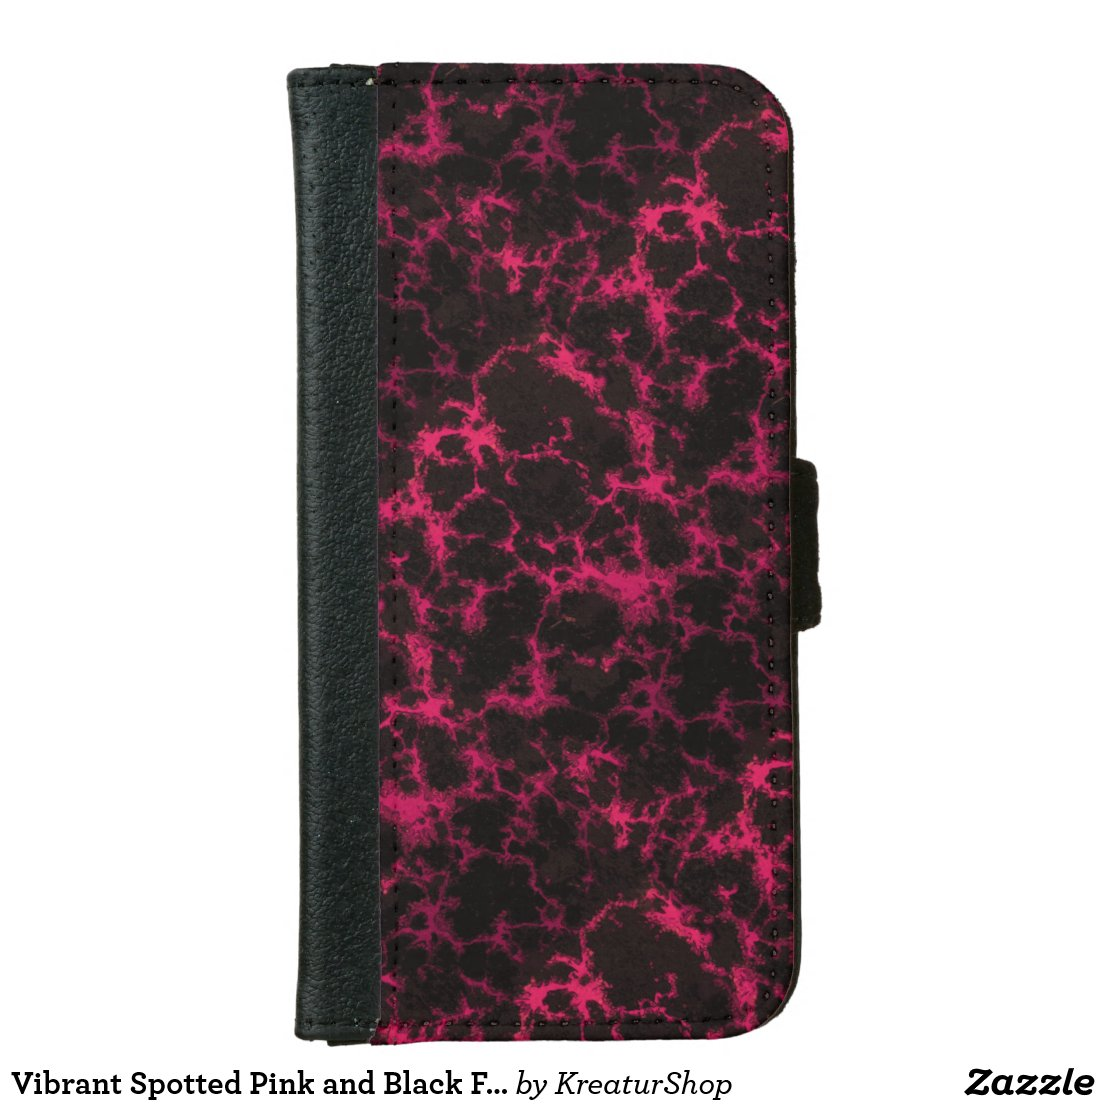 Vibrant Spotted Pink and Black Flames